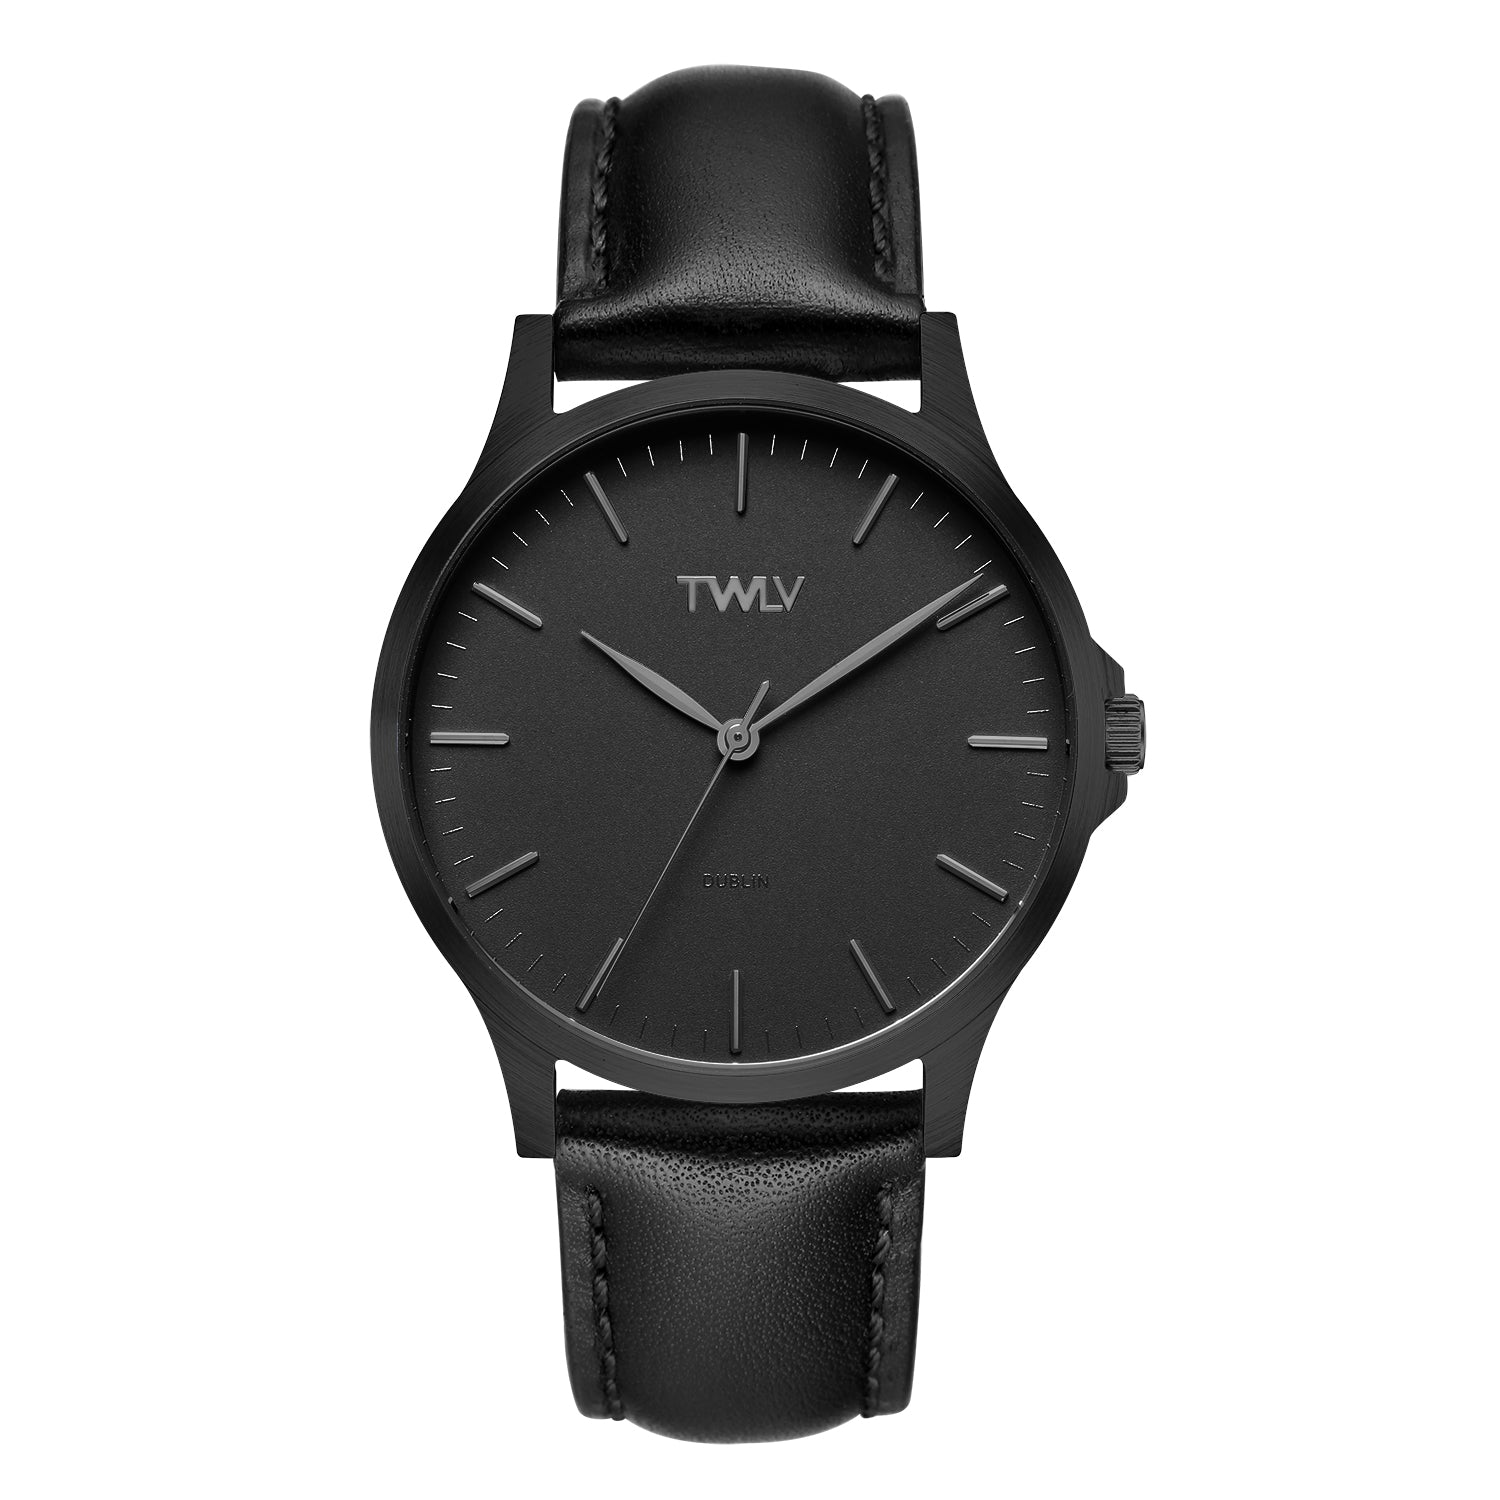 TW4605 TWLV Mr. Argue Black Strap Black